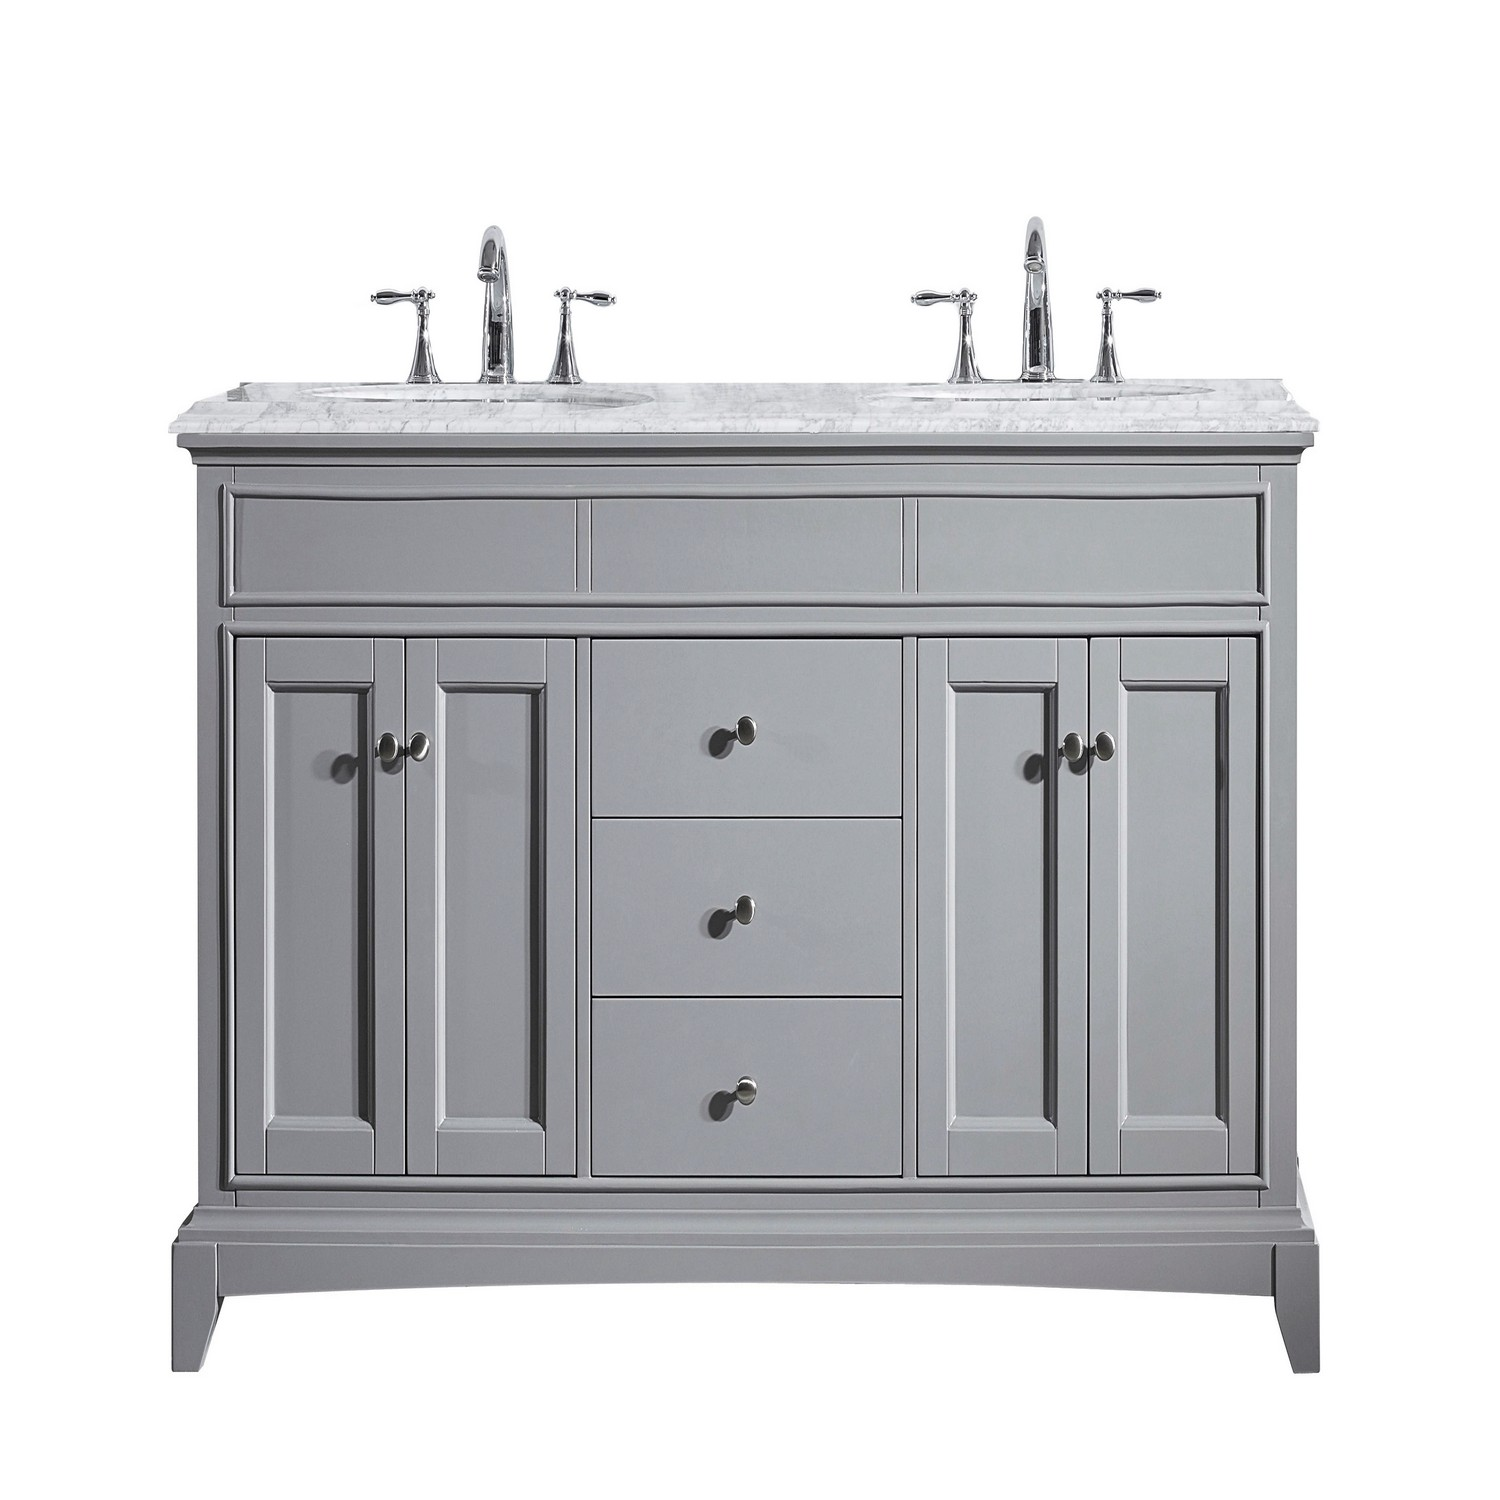 home decors us buy bathroom vanities and faucets and more